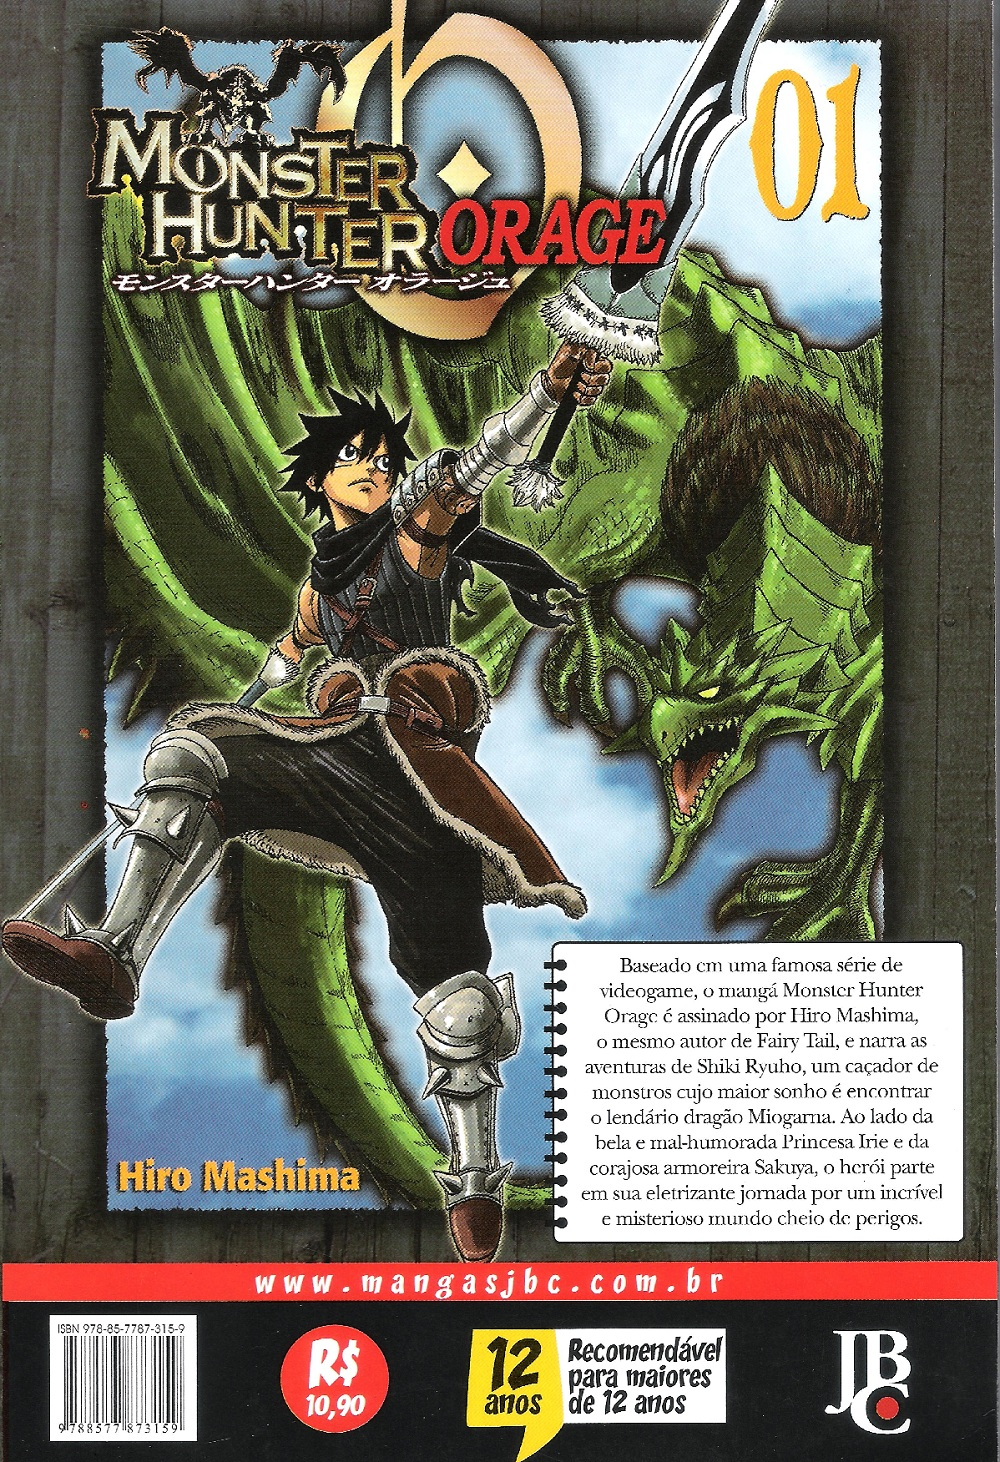 Photo of Monster Hunter Orage #01 | Hiro Mashima + Monster Hunter = Sucesso? (Impressões)